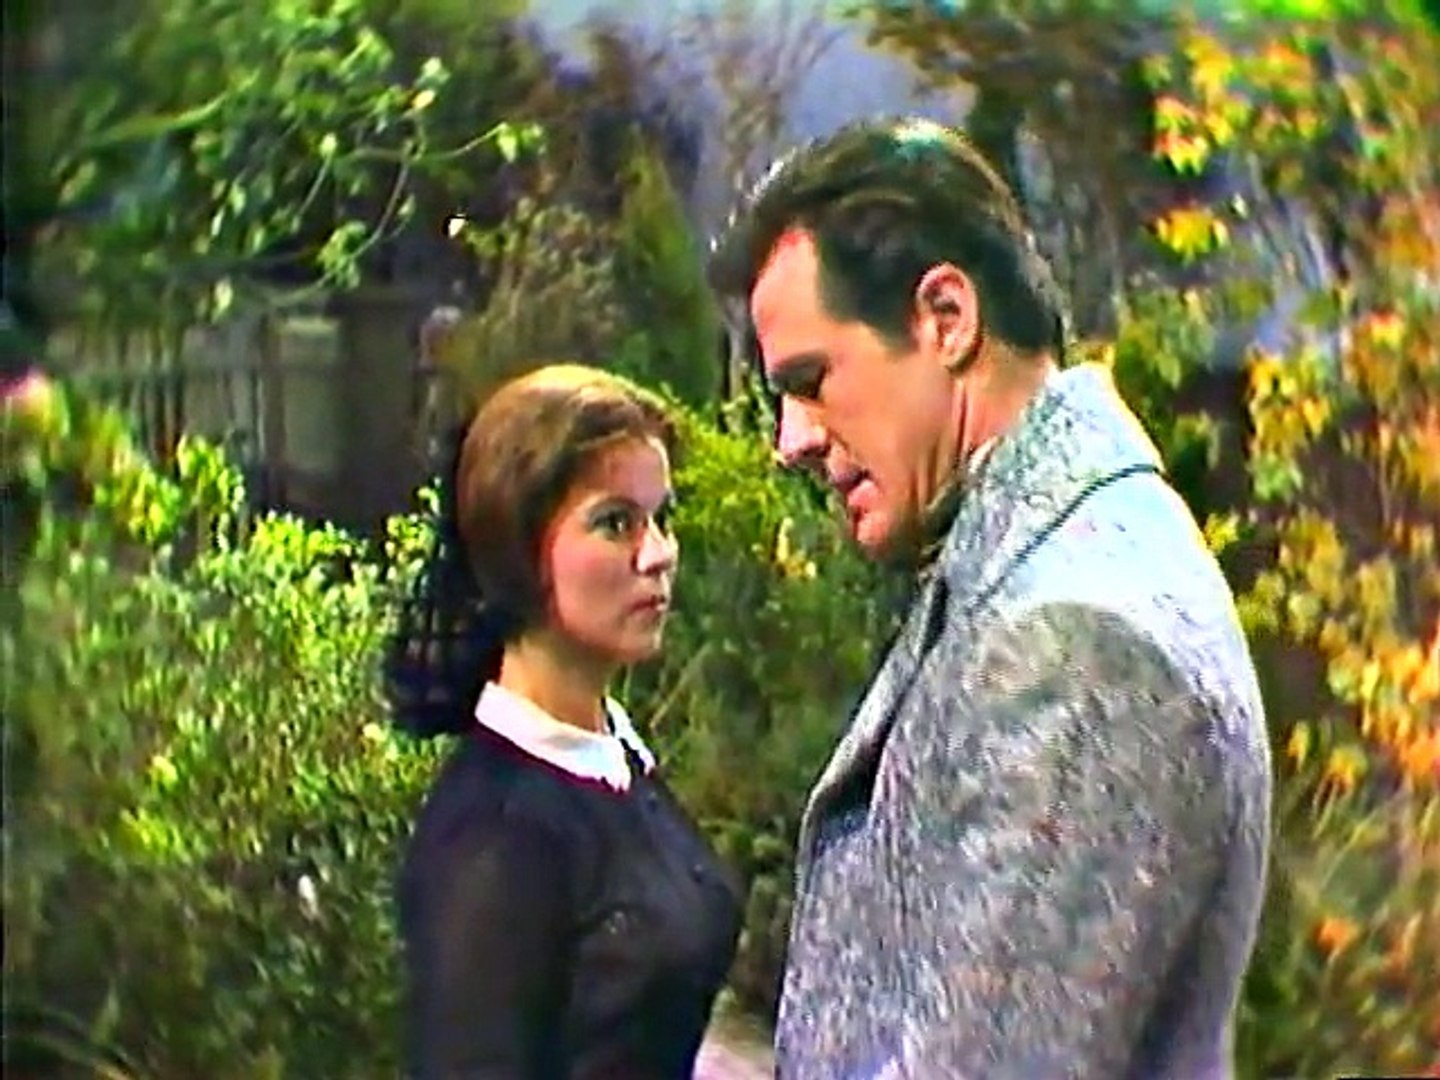 The Shirley Temple Show: The House Of Seven Gables (1960) - (Drama, Family, Fantasy)